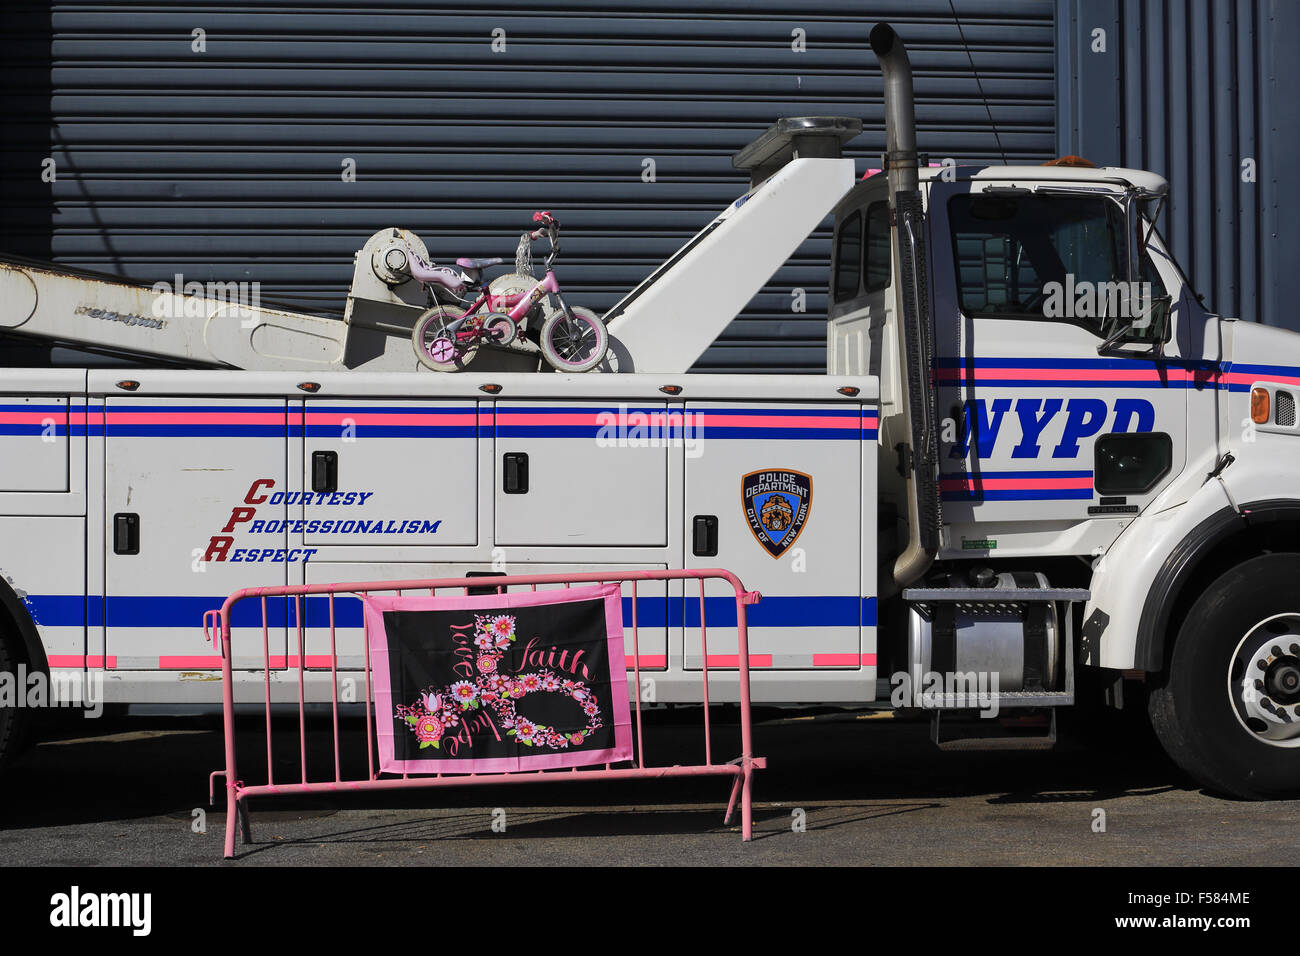 Heavy nypd police tow truck parking in violation tow service pier 76 tow pound at